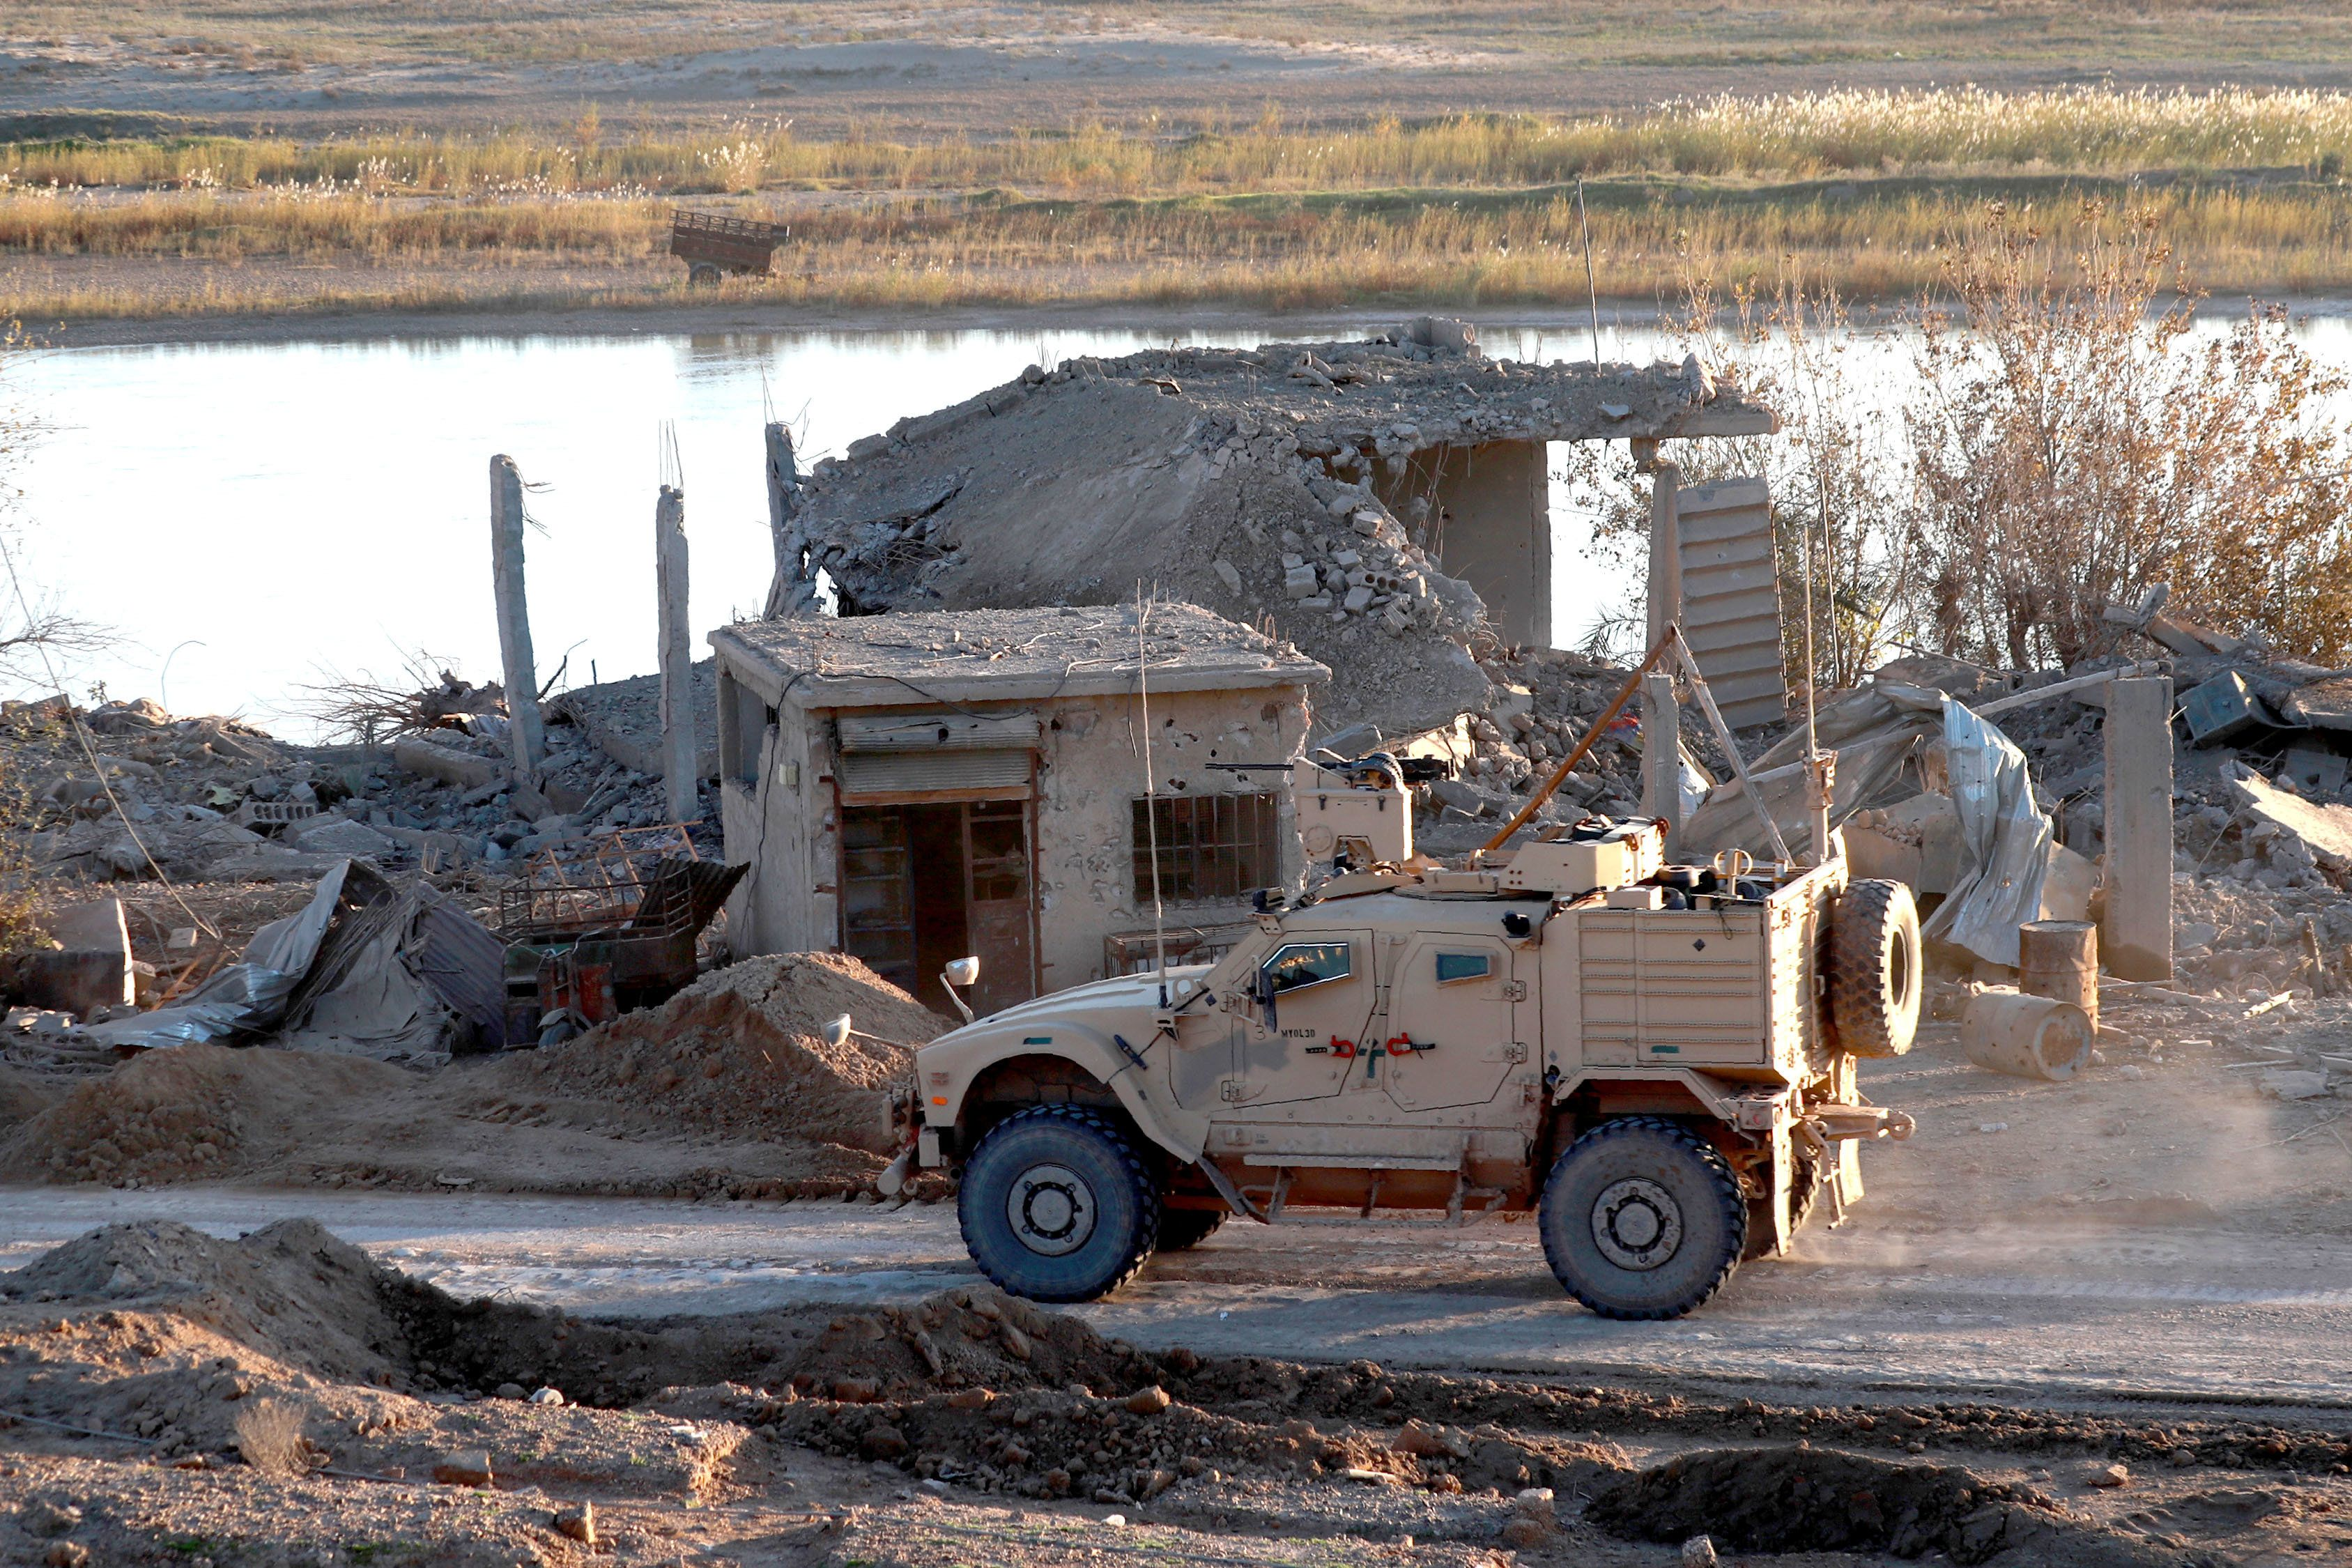 A U.S. army vehicle supports the Syrian Democratic Forces (SDF) in Hajin, in the Deir Ezzor province, eastern Syria, on Dec.1